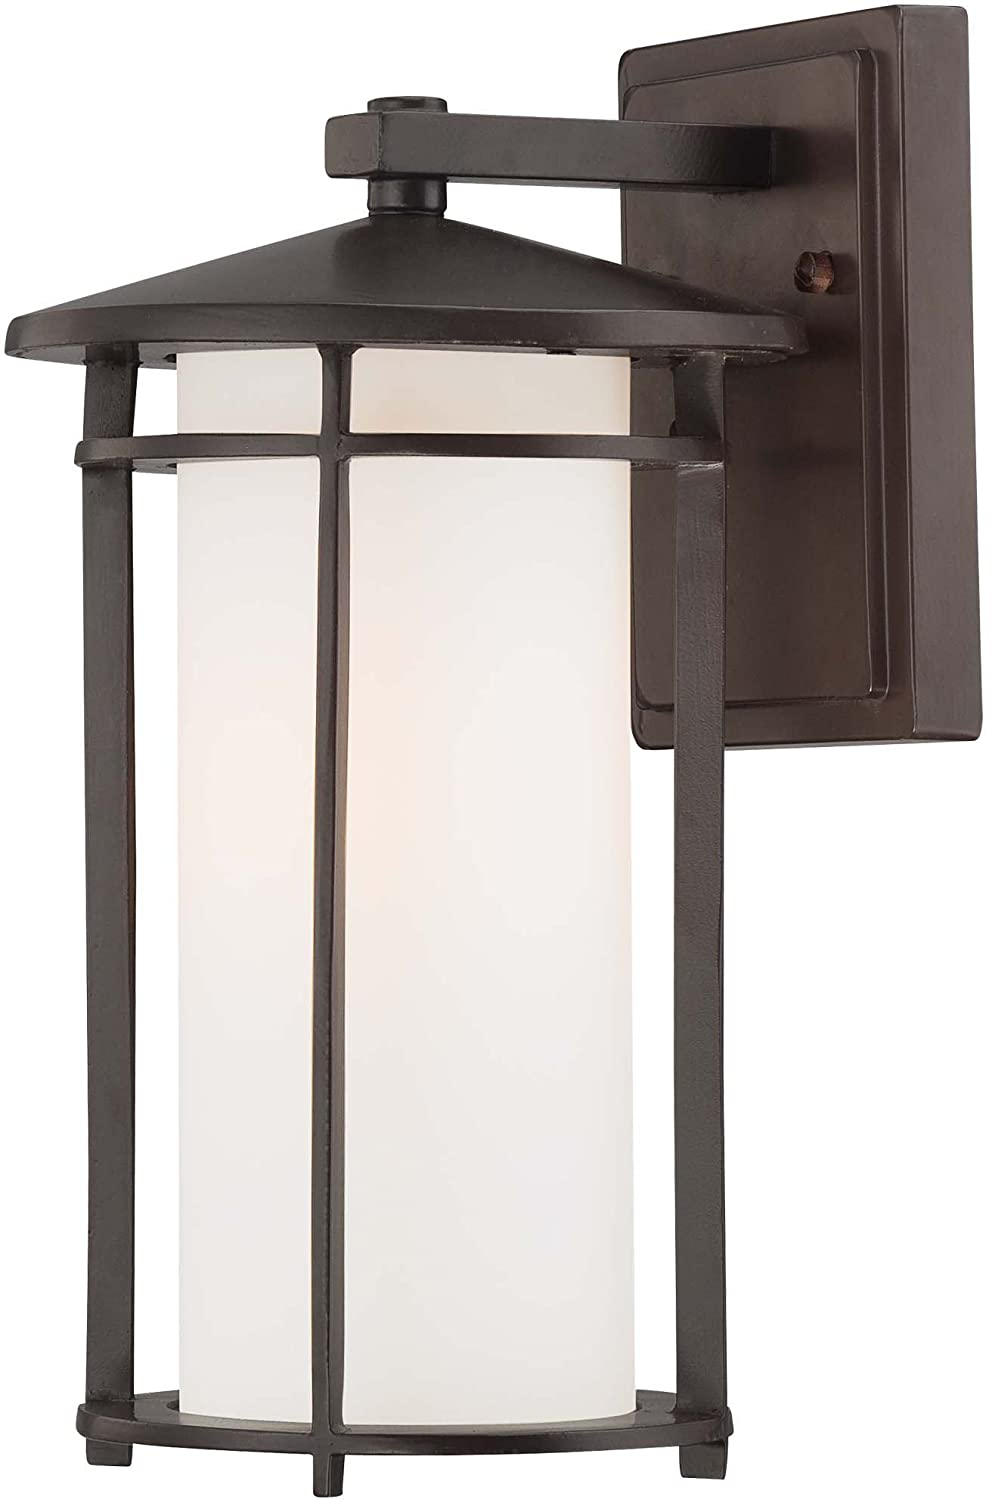 Minka Lavery 72311 615B, Addison Park, 1 Light Wall Mount, Dorian Bronze      Amazon.com